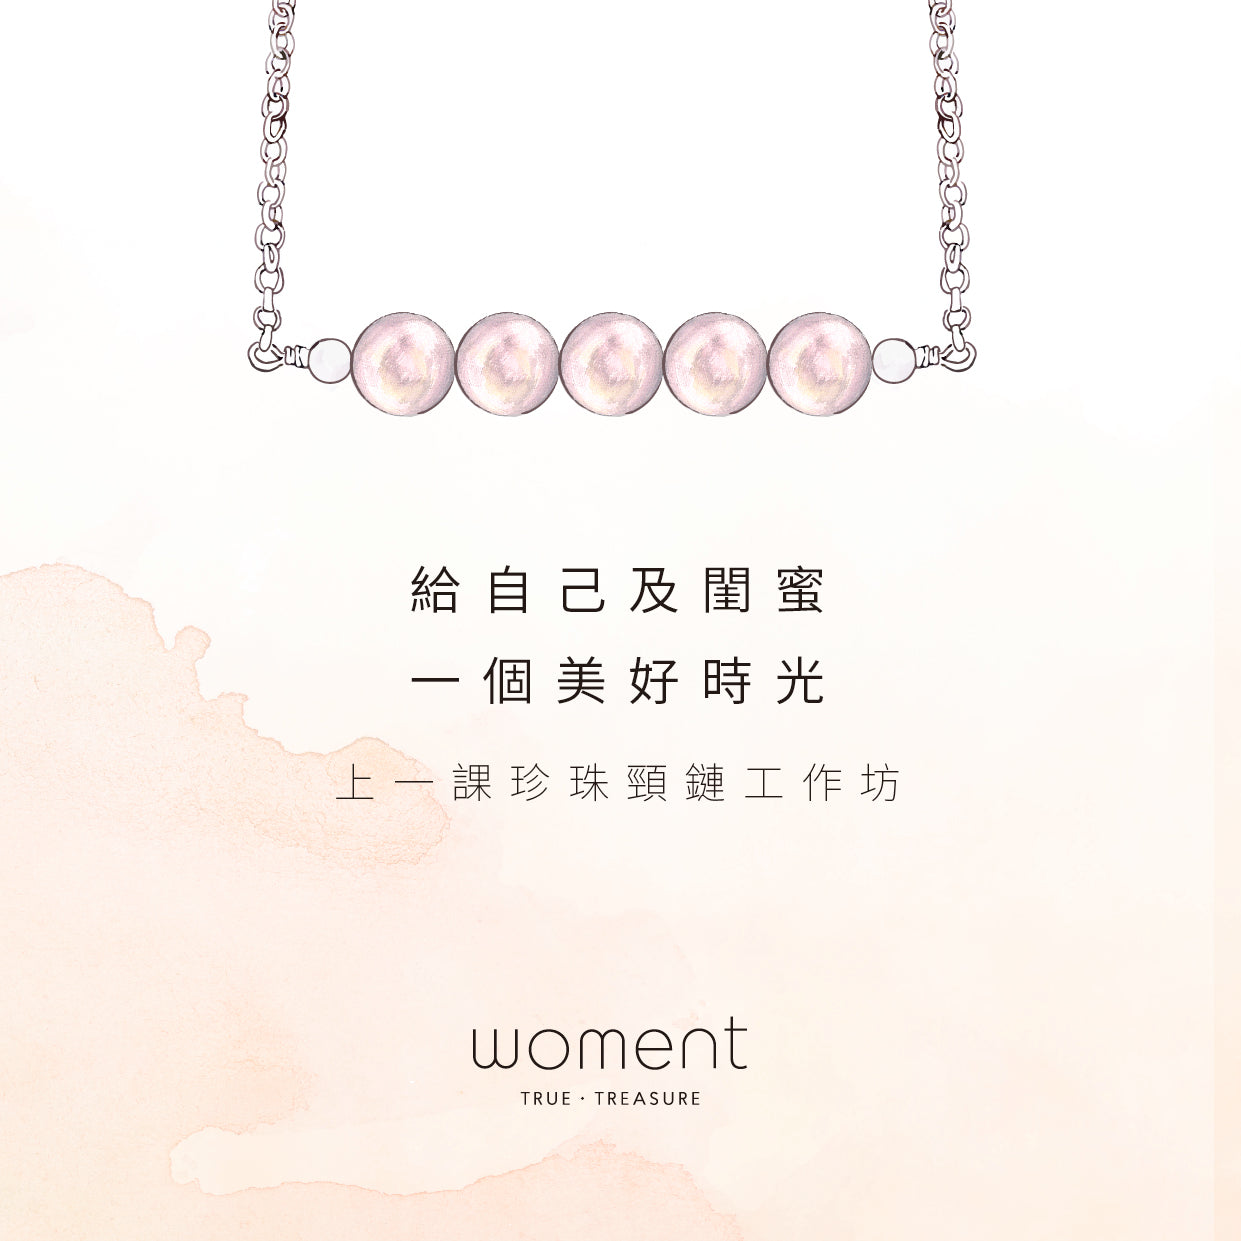 Class D/E - D.I.Y 珍珠頸鏈工作坊 -16/06/2019 - Woment Designer Jewelry